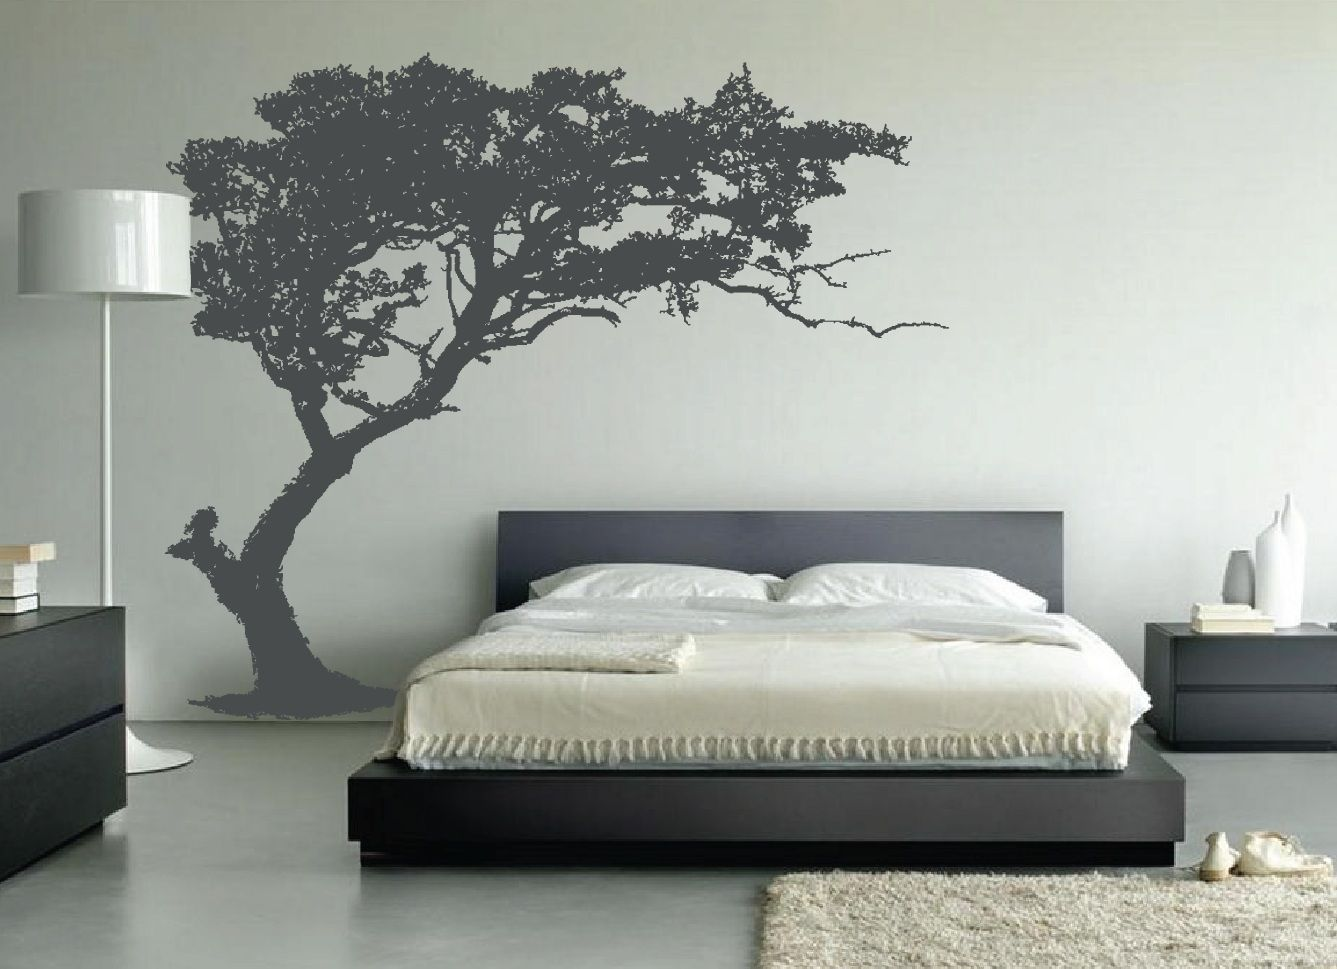 Modern Bedroom Wall Decor Large Wall Tree Decal Forest Decor Vinyl Sticker Highly Detailed